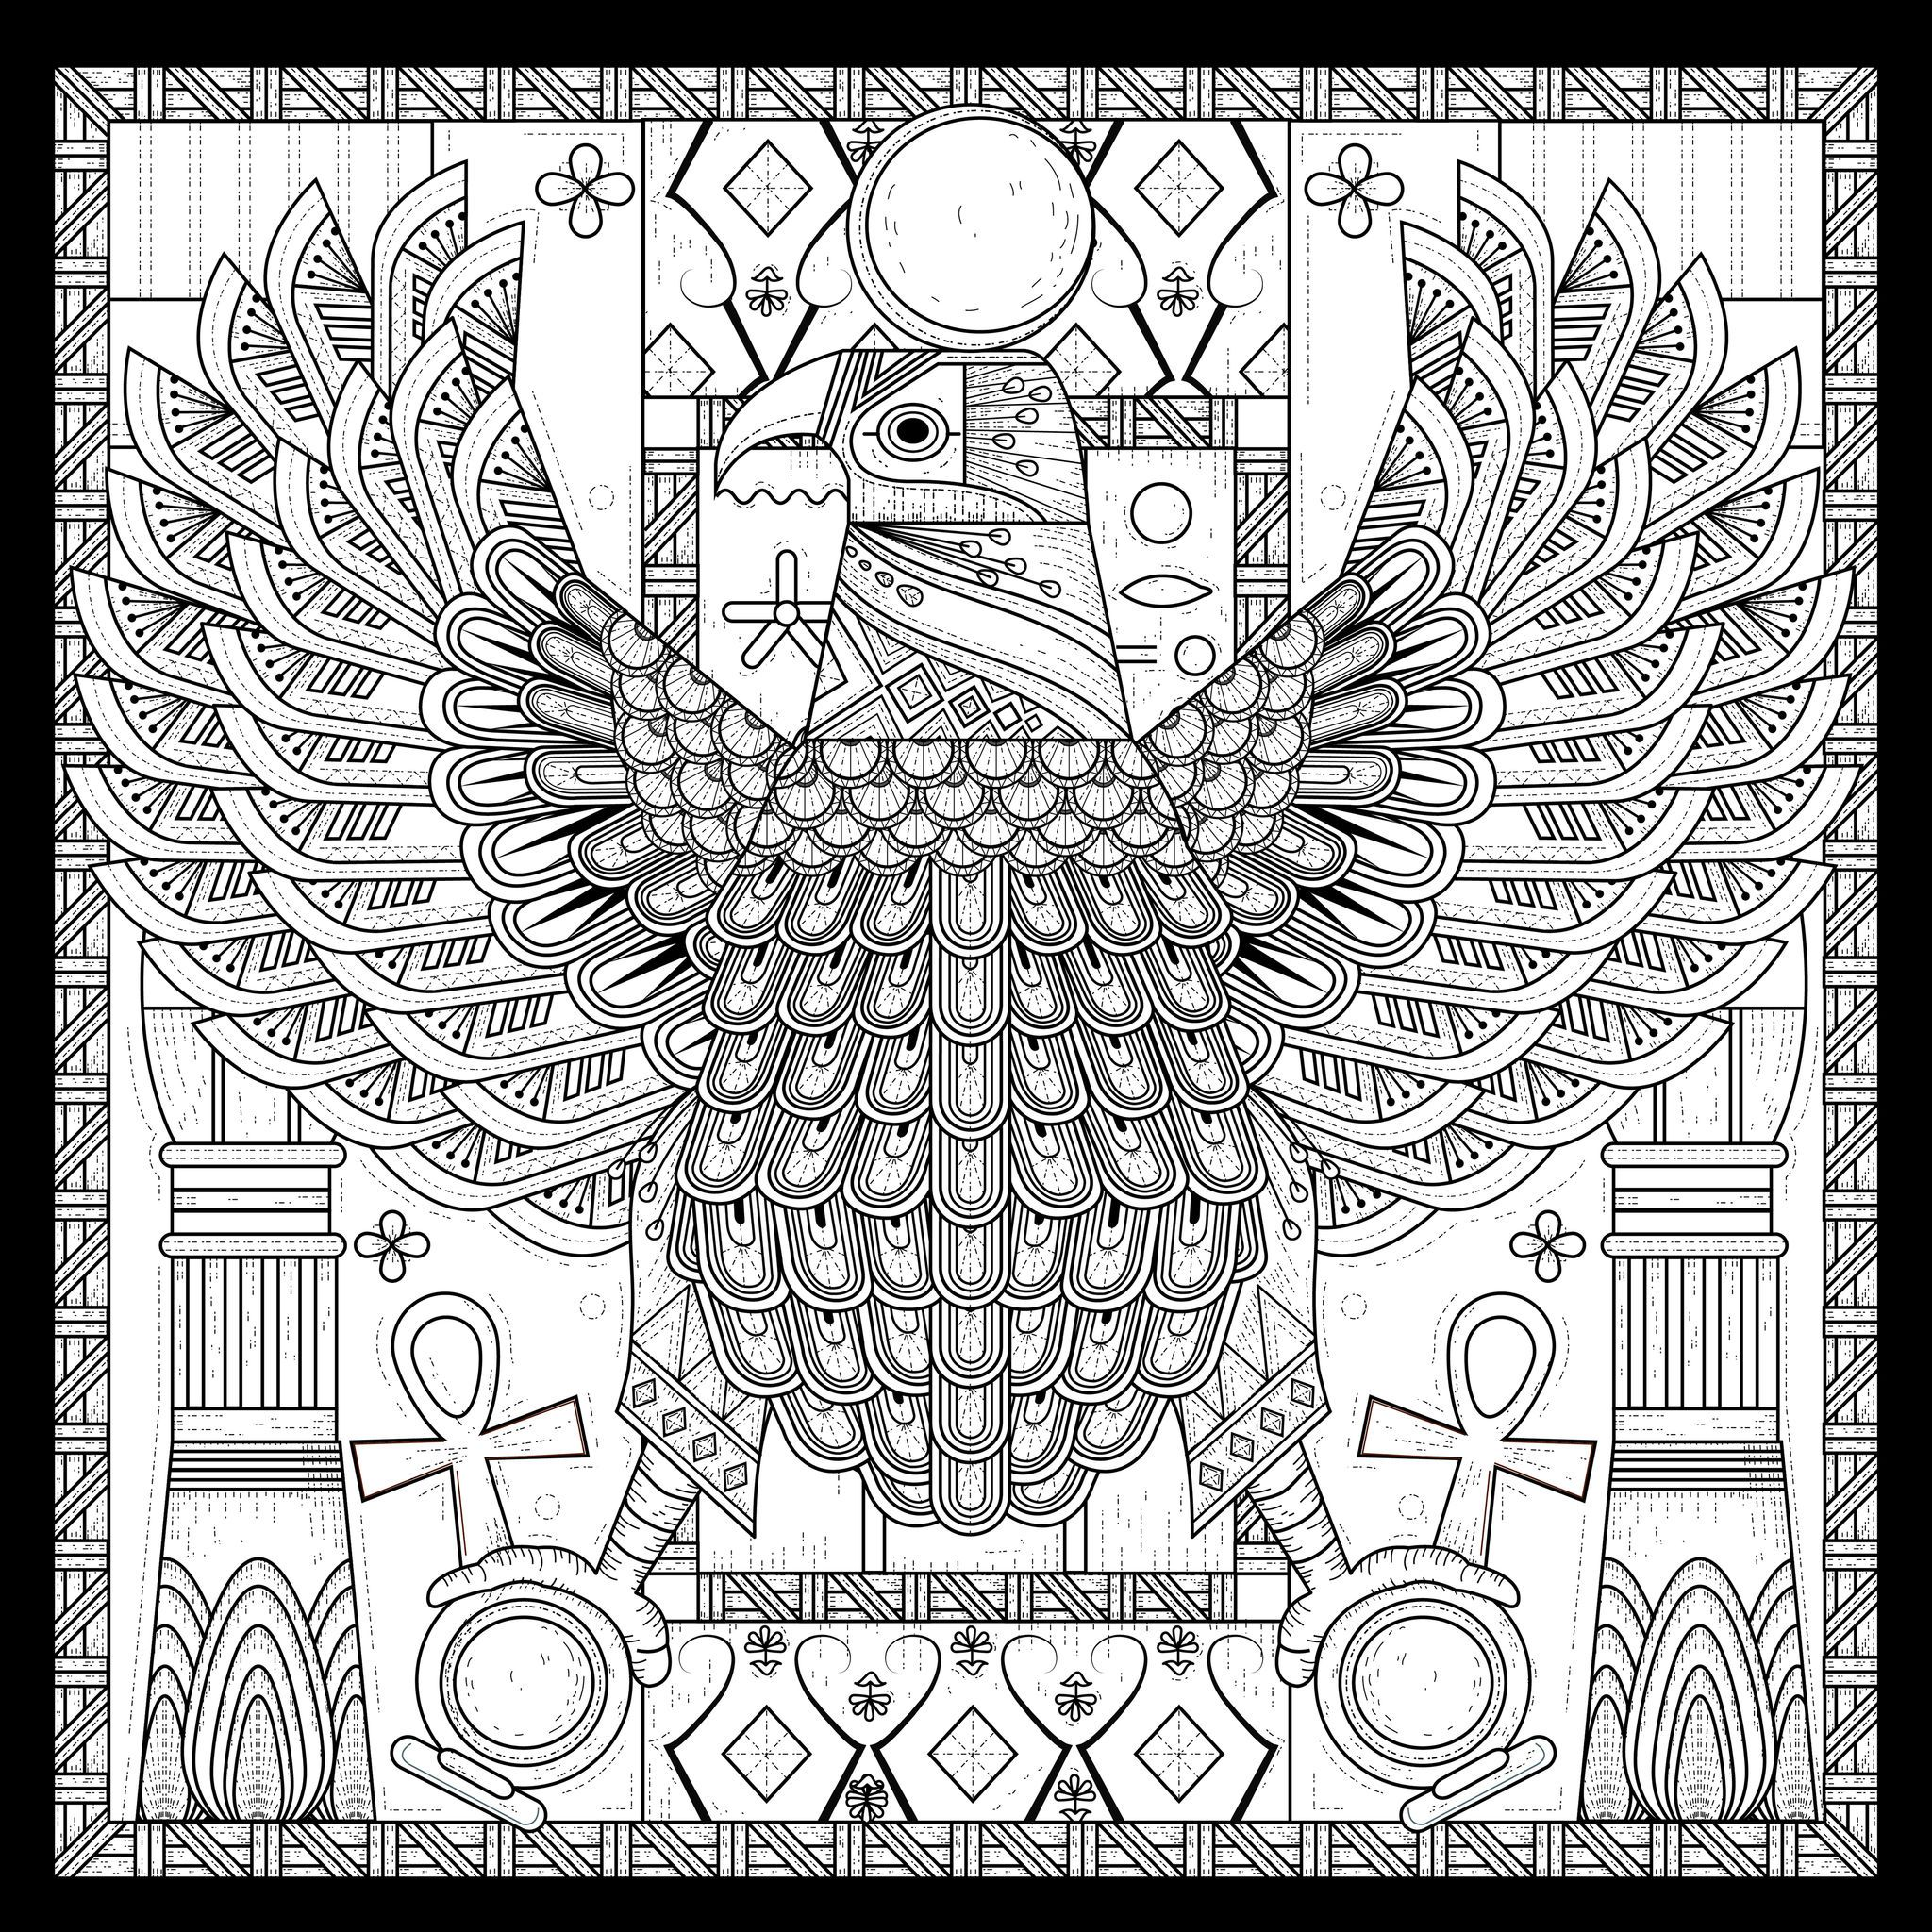 free coloring page coloringadultegypteagleegyptian